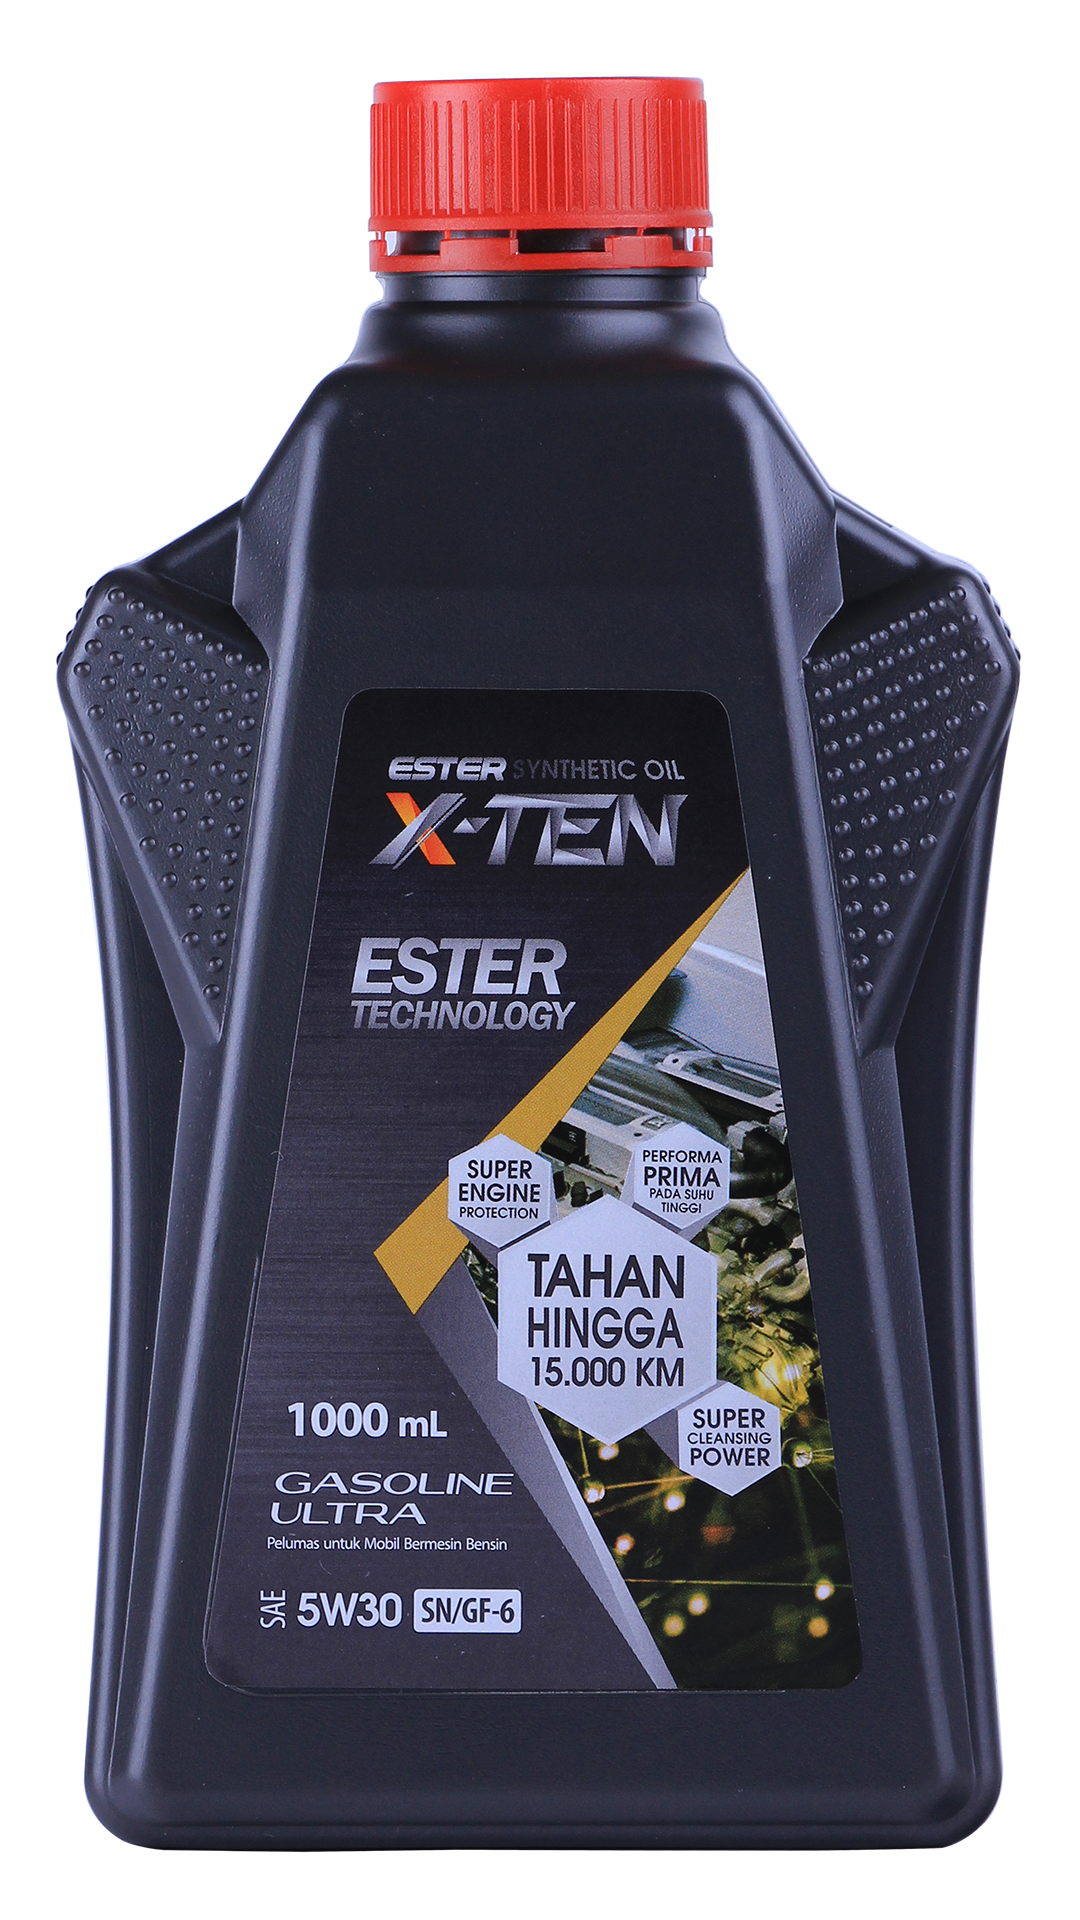 X-Ten Gasolin Ultra 5W30 SN/GF6 Image